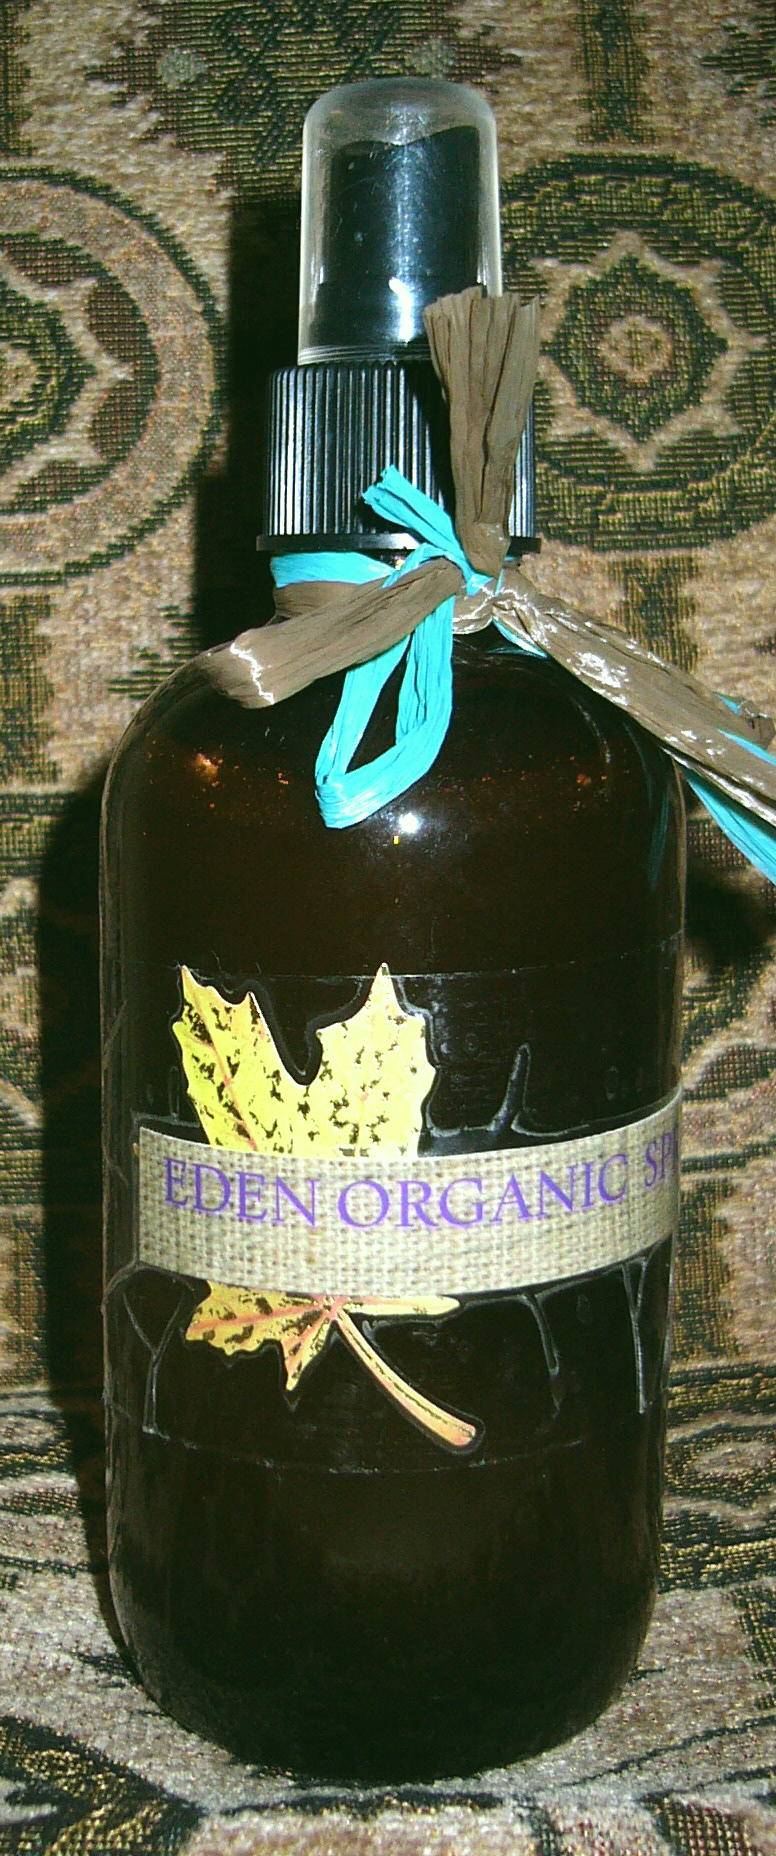 EDEN ORGANIC SPRAY